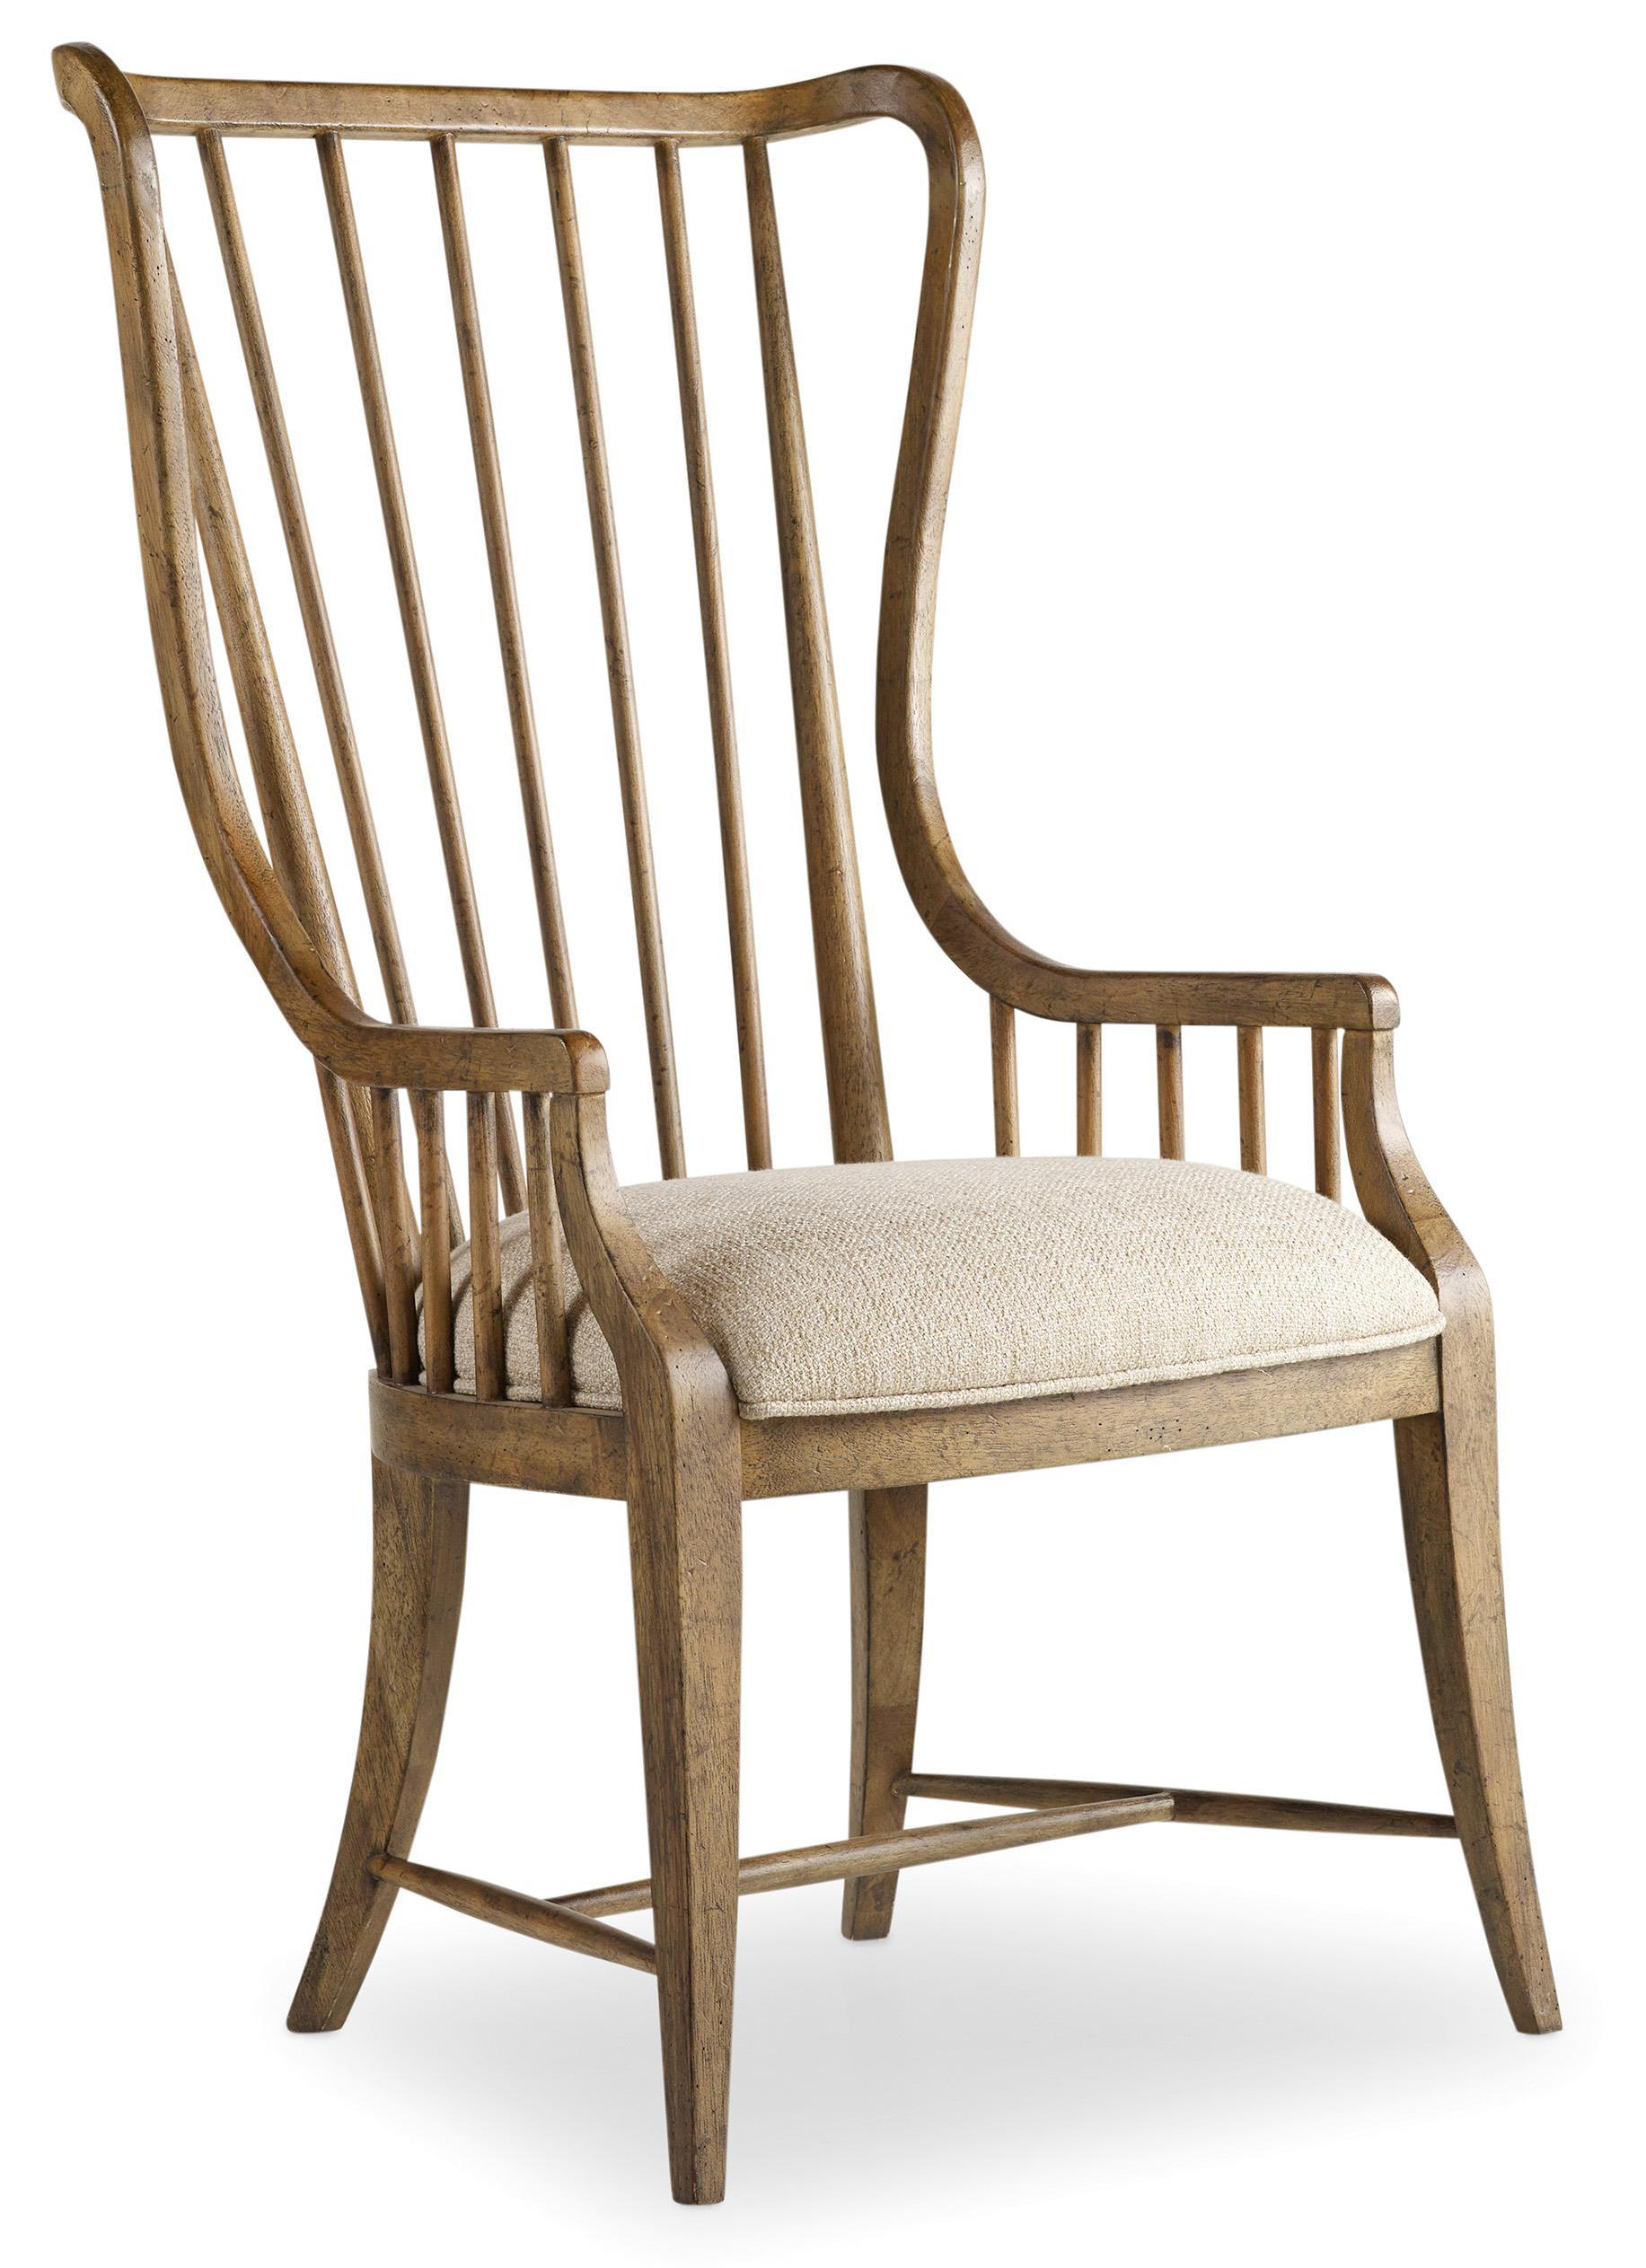 Sanctuary Tall Spindle Arm Chair by Hooker Furniture at Baer's Furniture